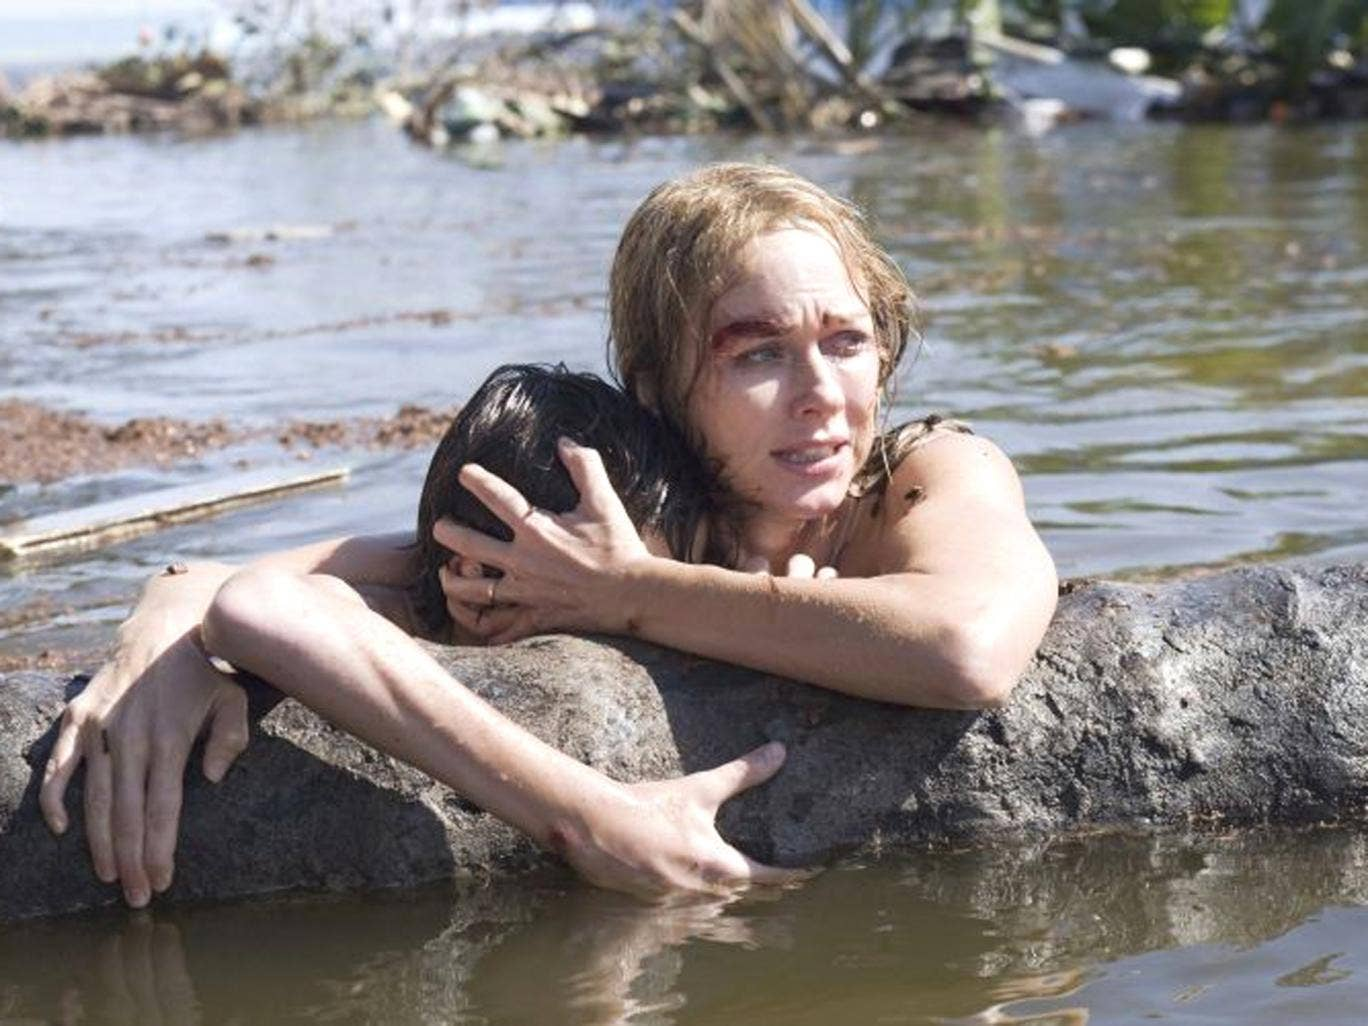 Fight for survival: Tom Holland and Naomi Watts battle against the odds as mother and son in 'The Impossible'